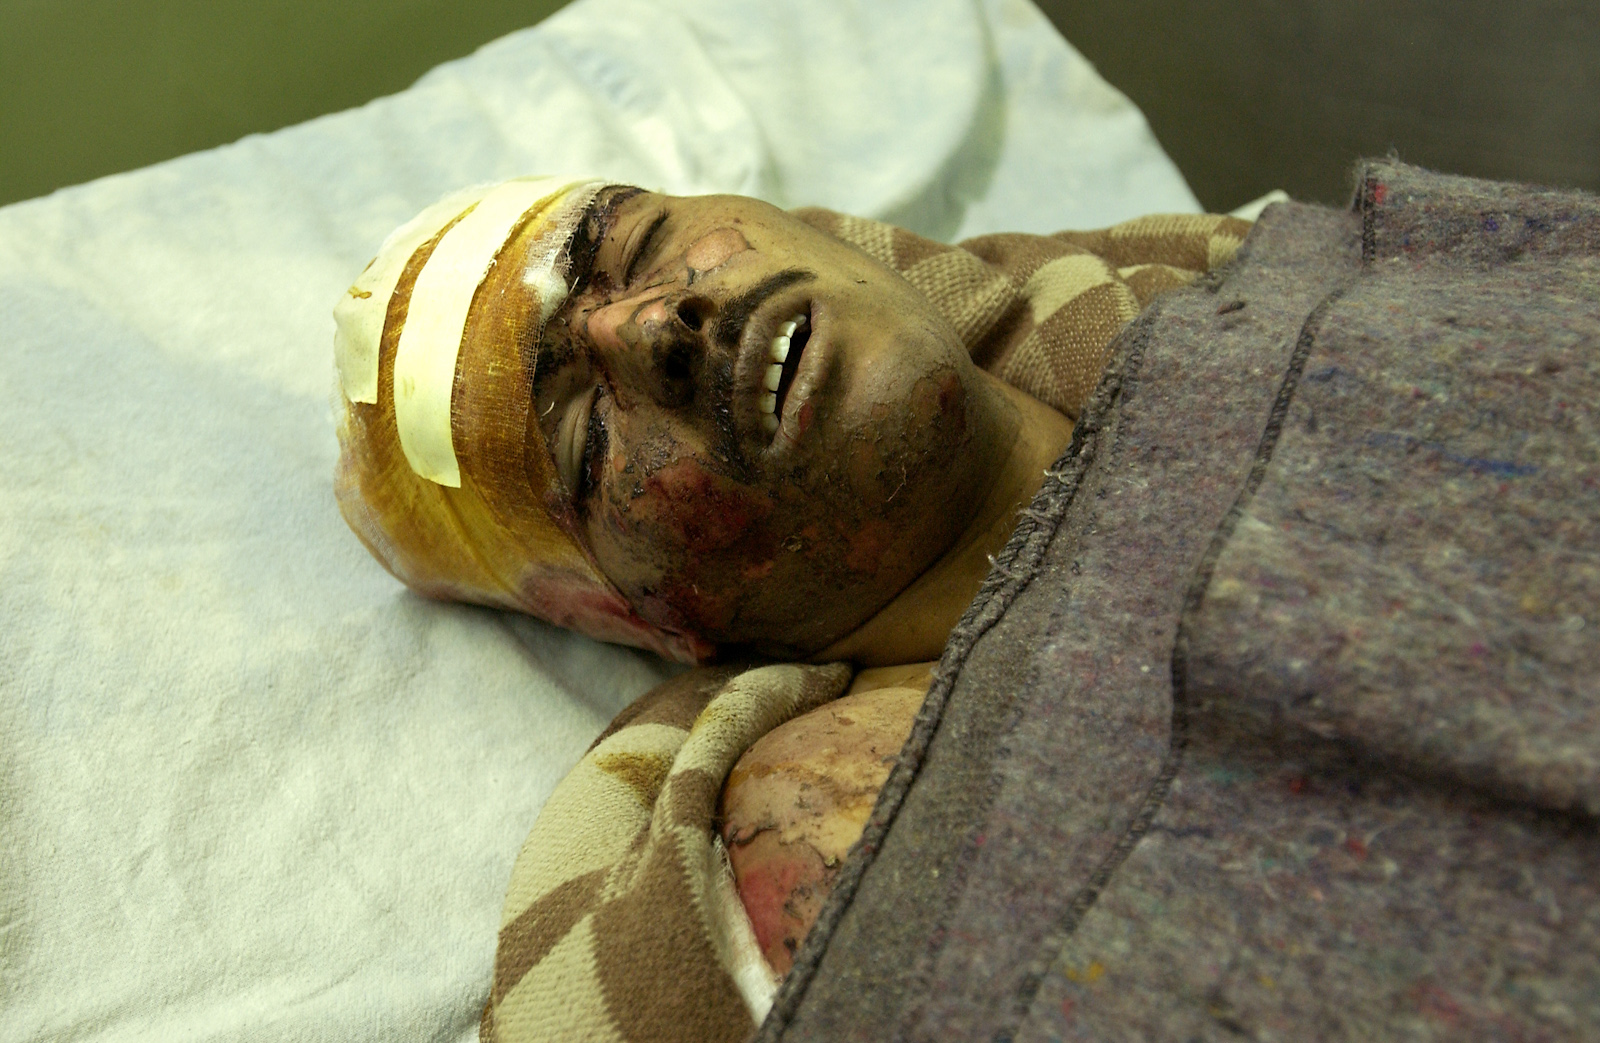 A wounded Iraqi man in a Baghdad hospital after airstrikes in the days following the U.S. bombing of Baghdad, April 4, 2003.